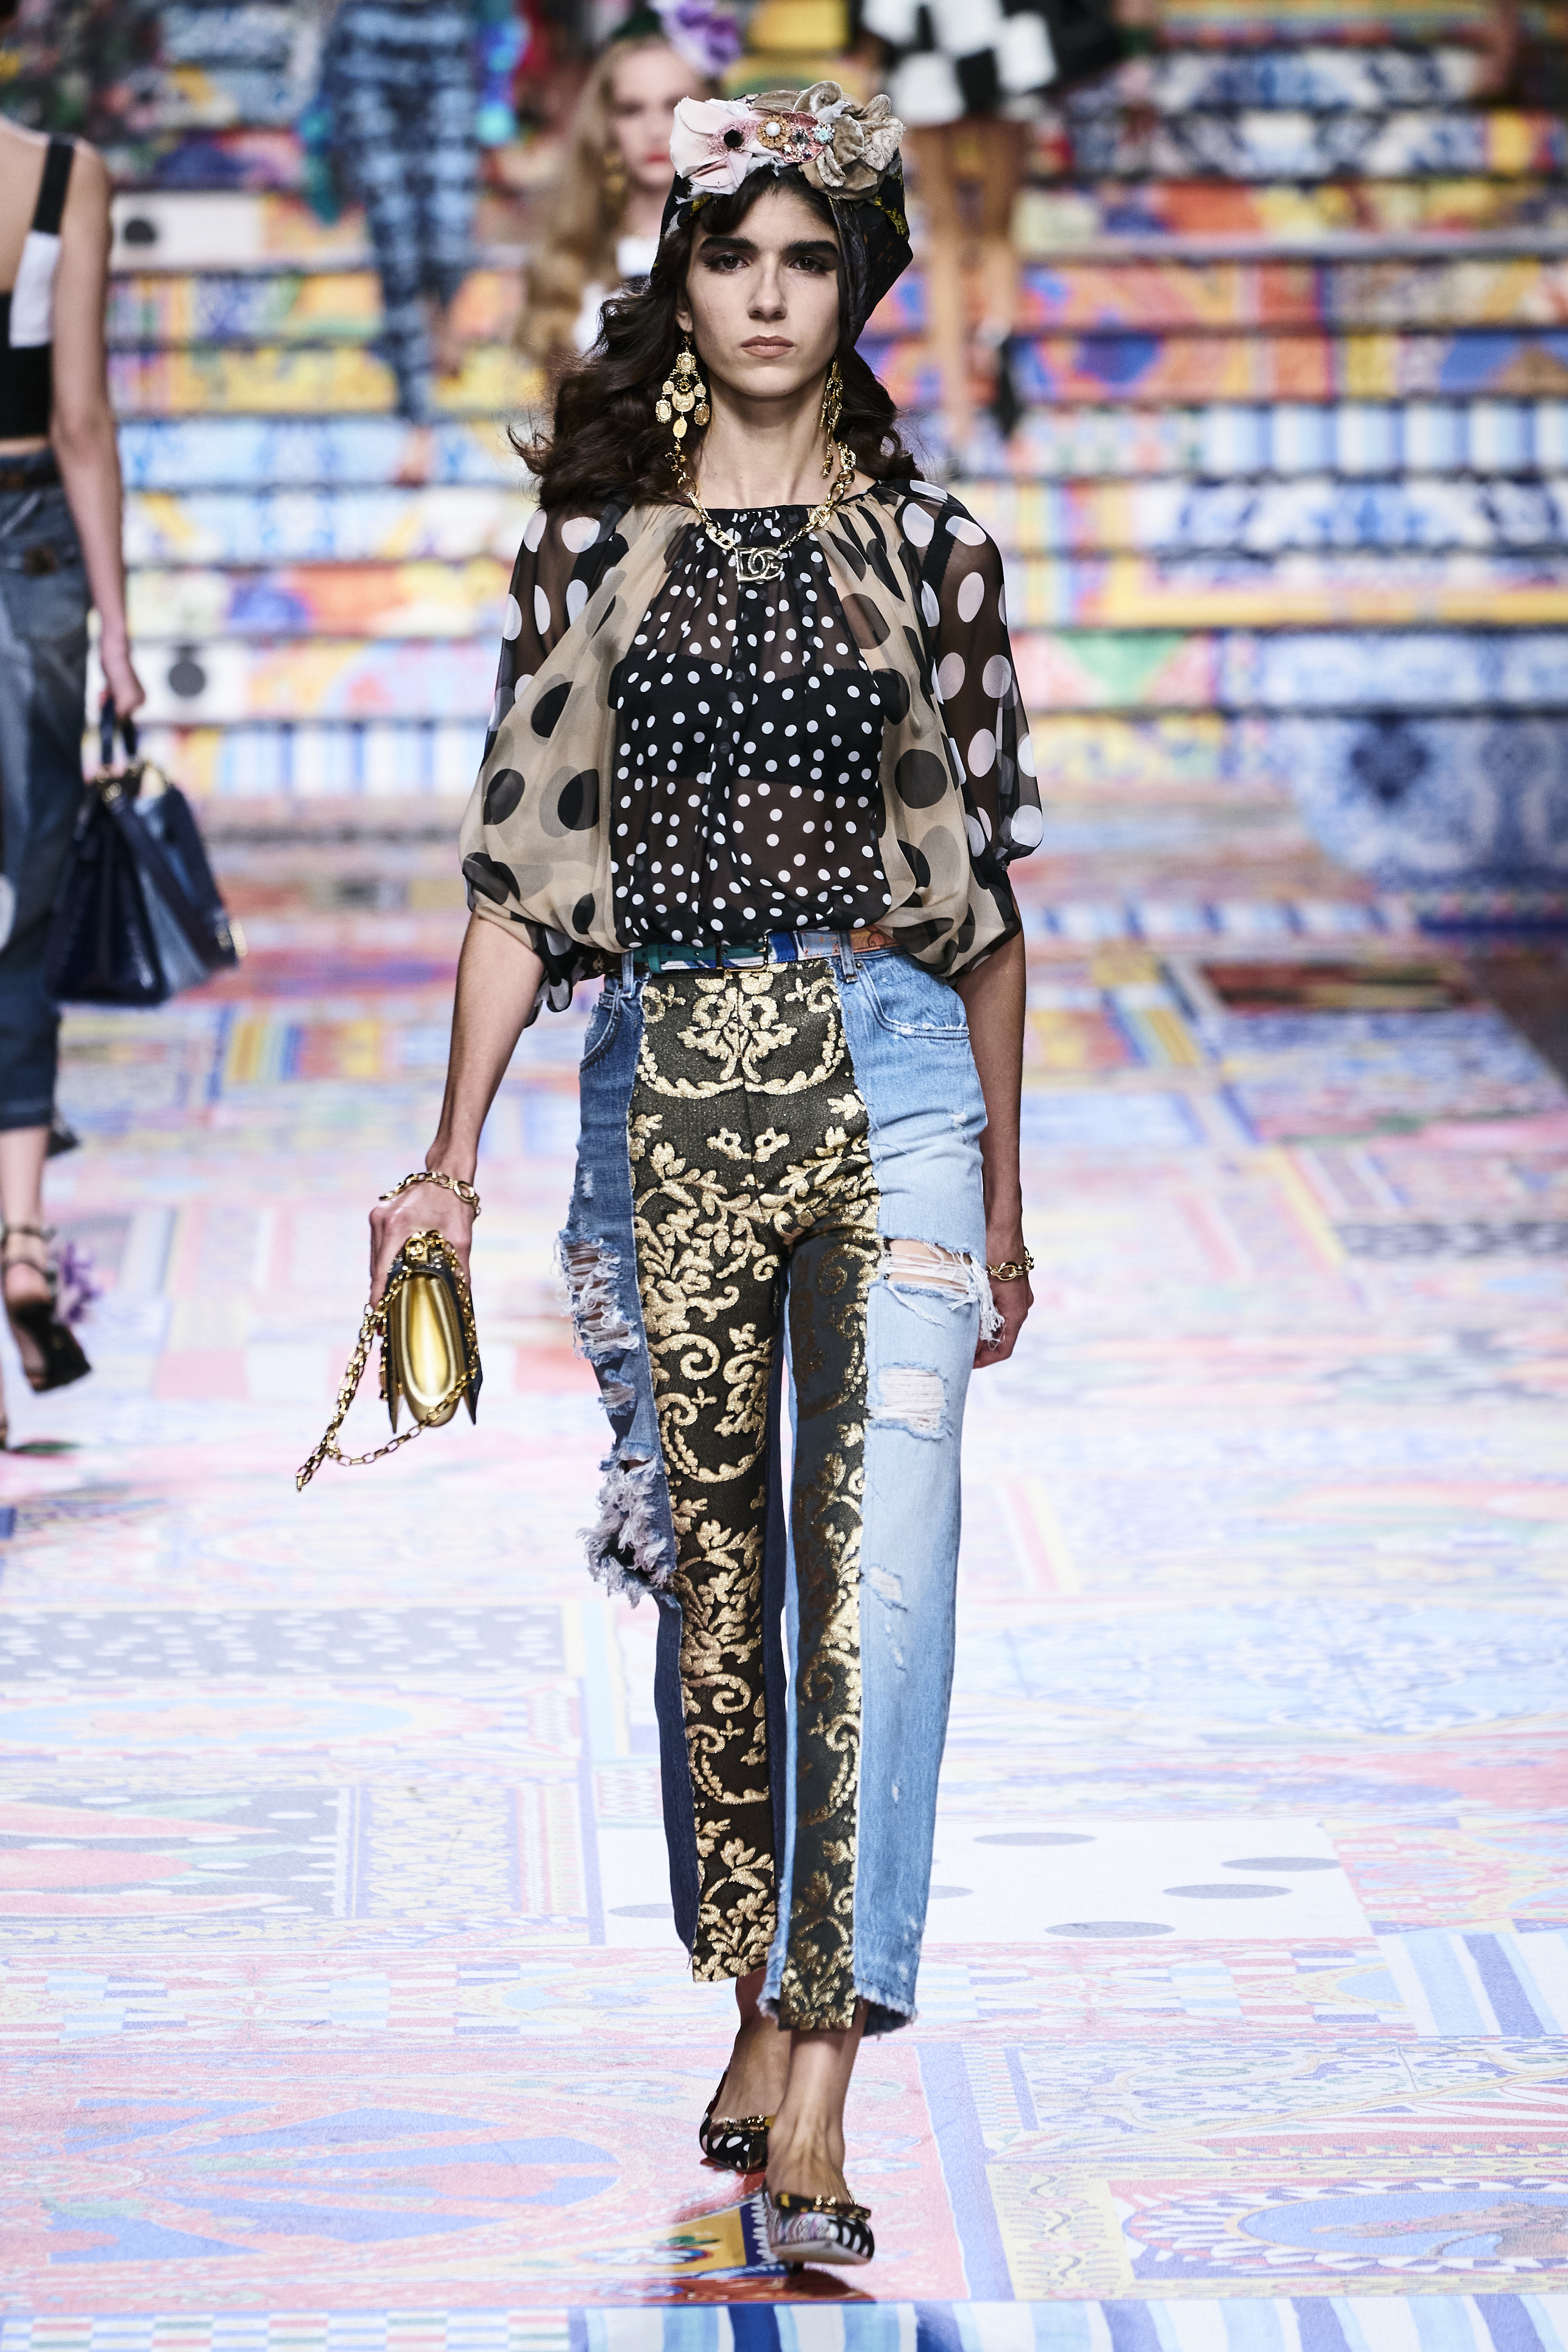 Prints galore: Dolce & Gabbana and Versace's Spring/Summer '21 collection (фото 6)